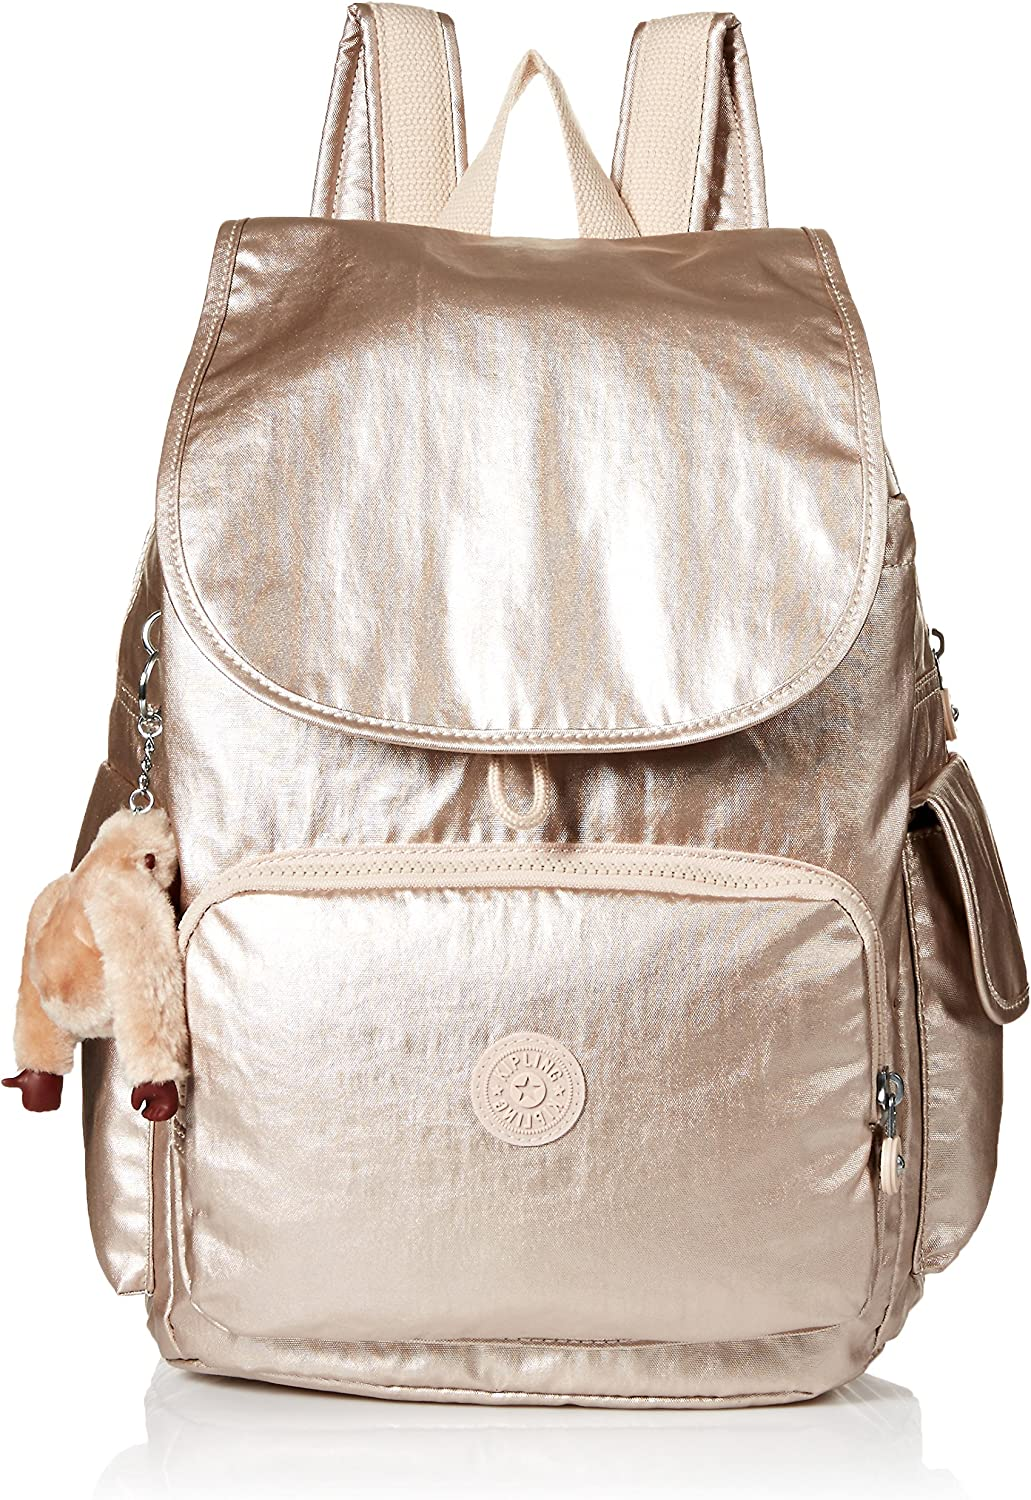 Kipling Women's City Pack Sparkly Gold Backpack, One Size